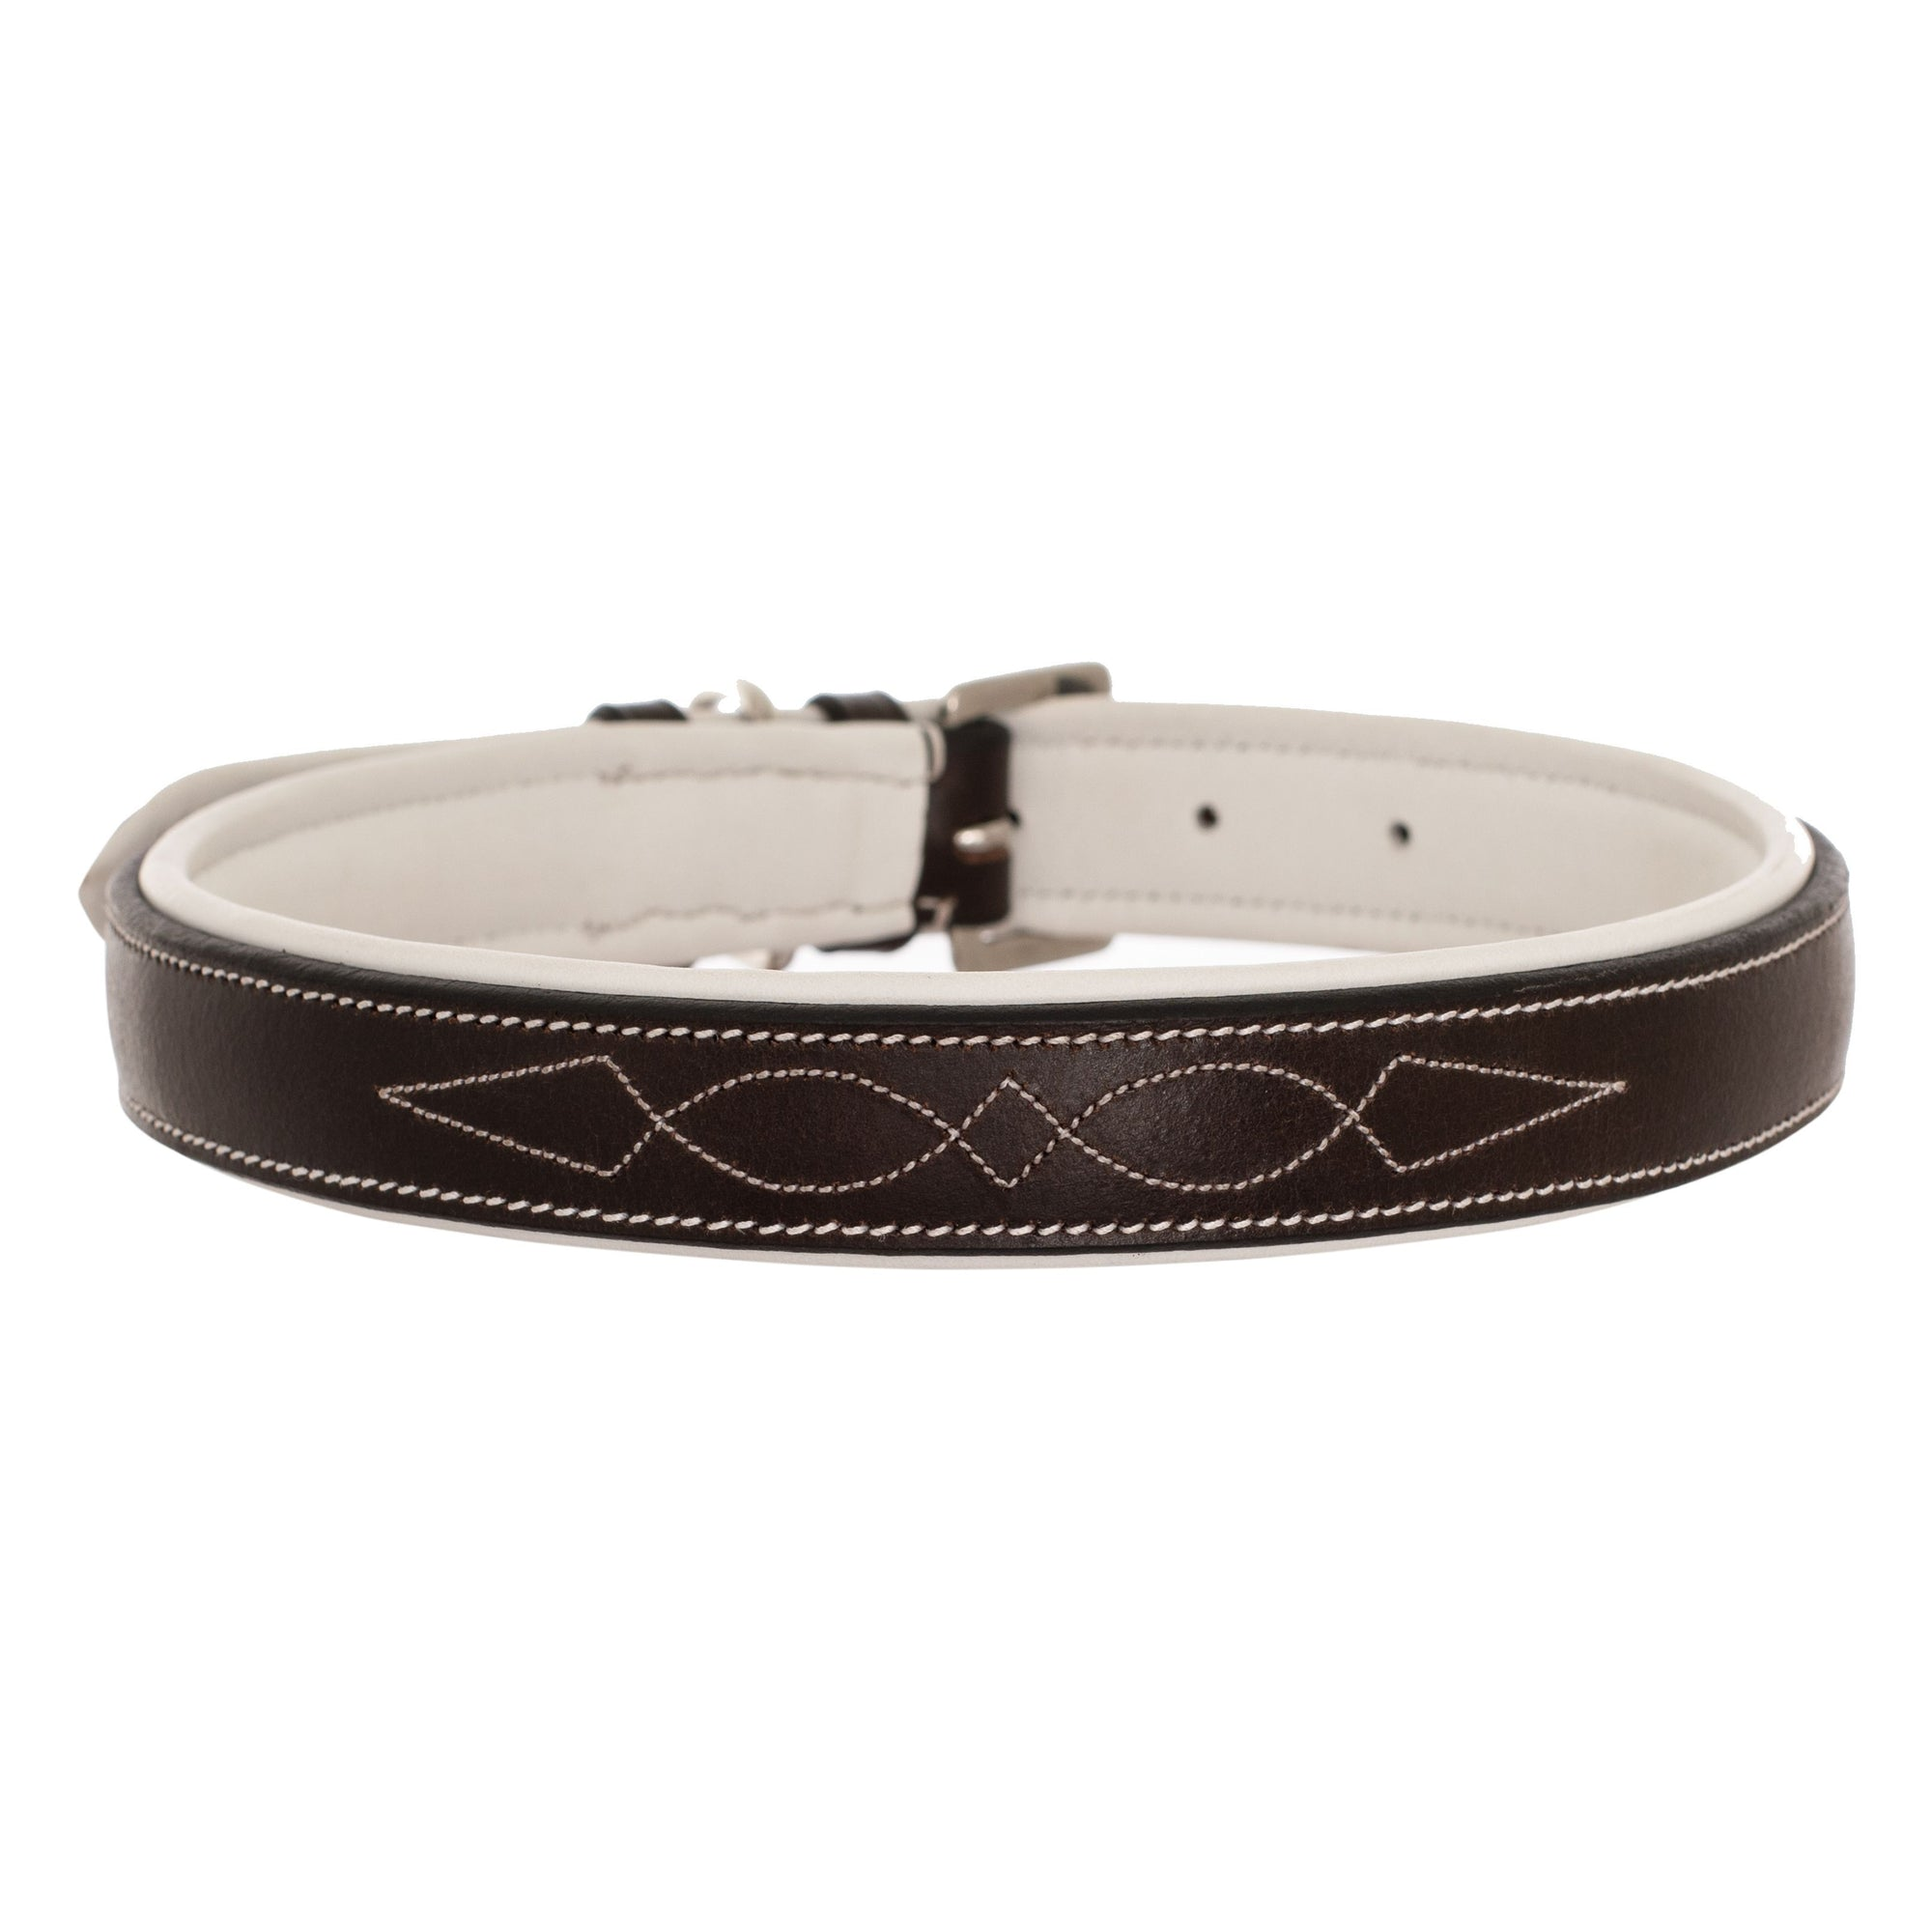 ExionPro Fancy Stitched Padded Leather Dog Collar - White Padding-Bridles & Reins